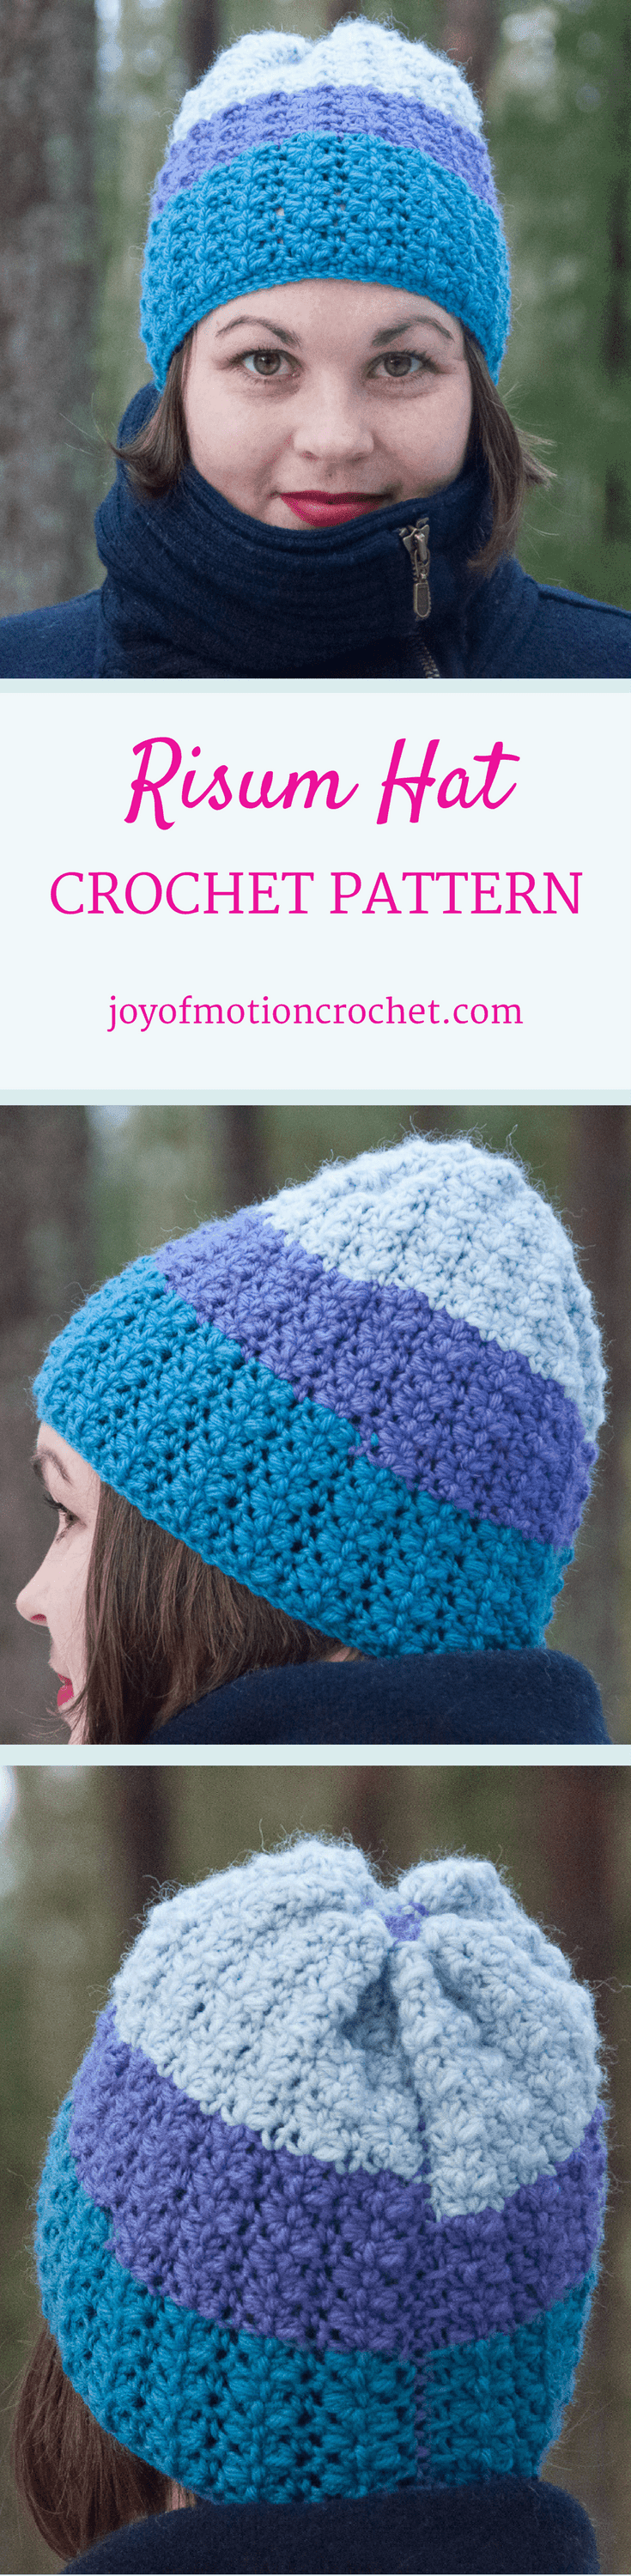 The Risum hat. Crochet pattern for a warm winter hat. This beanie pattern has a huge size range from 12 months to adult size| Hat crochet patterns. Crochet pattern hats. Beanie crochet patterns. Hood crochet pattern. Hat crochet designs. Slouchy hat patterns. Slouchy beanie crochet patterns. Animal crochet pattern hats. Women's crochet pattern hat. Baby crochet pattern beanie. Beanie crochet pattern children's. Click link to learn more.